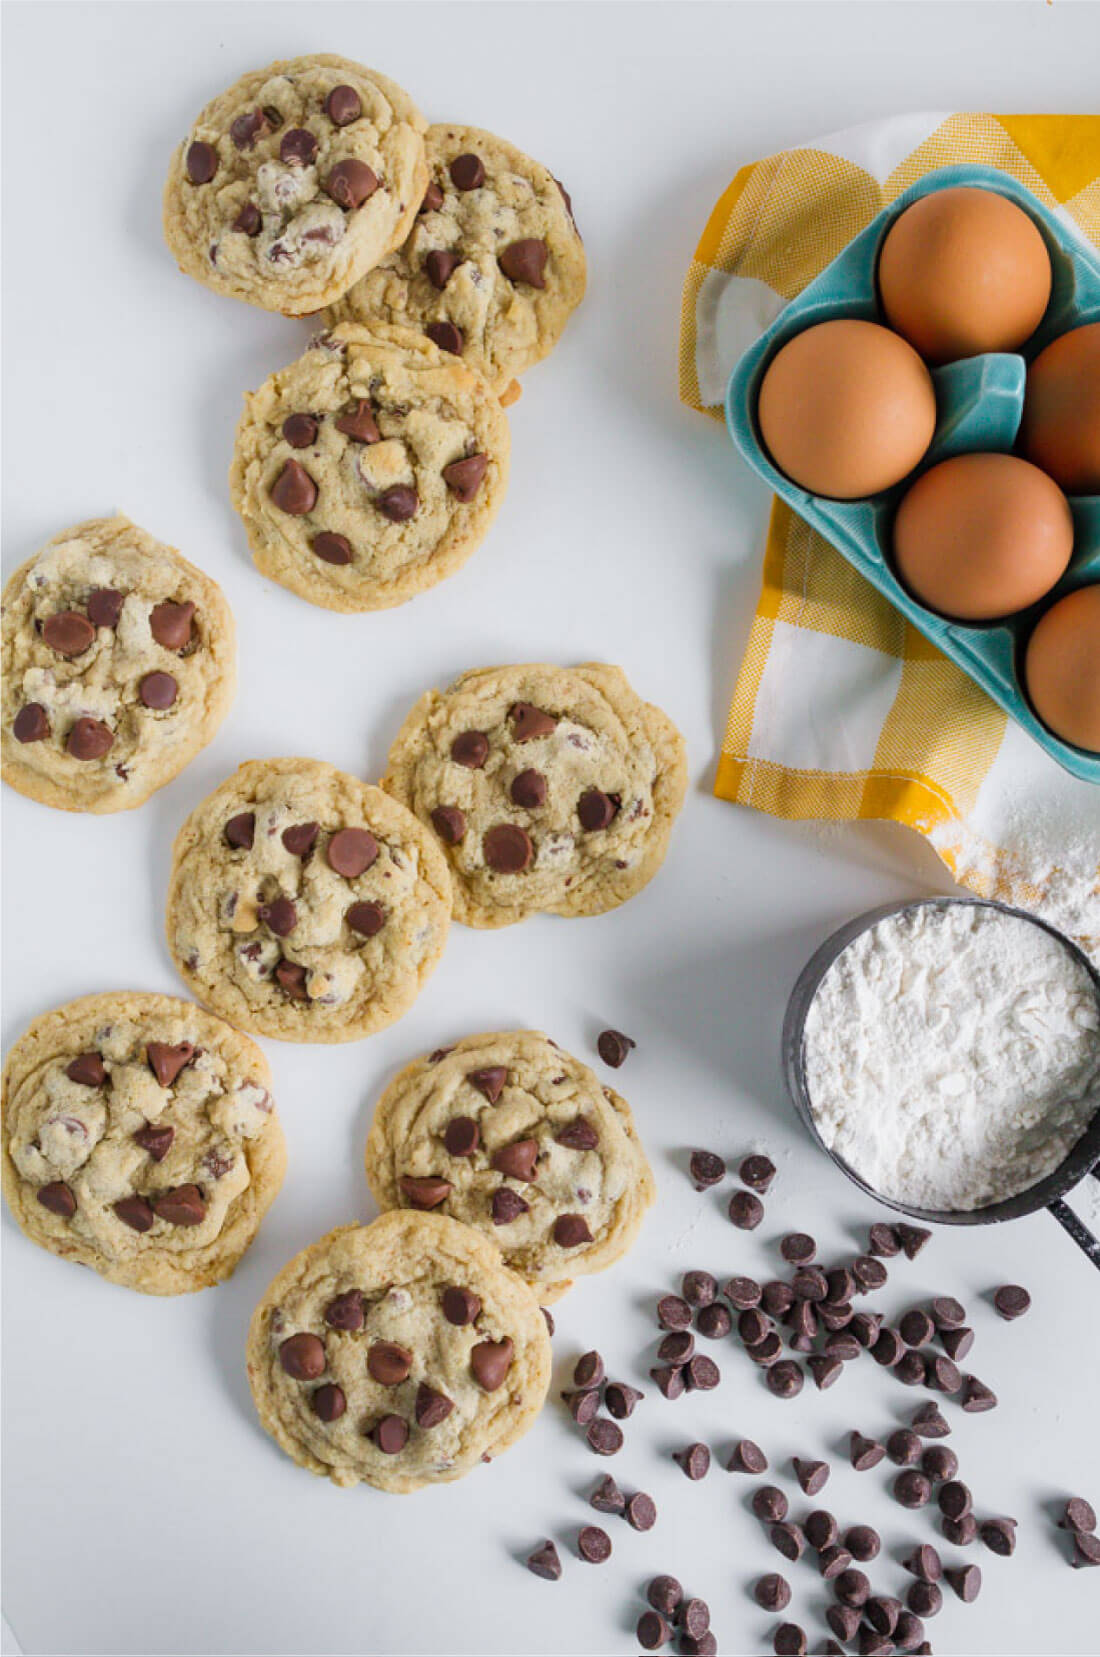 5 Tips to Make the Perfect Chocolate Chip Cookies every single time from www.thirtyhandmadedays.com